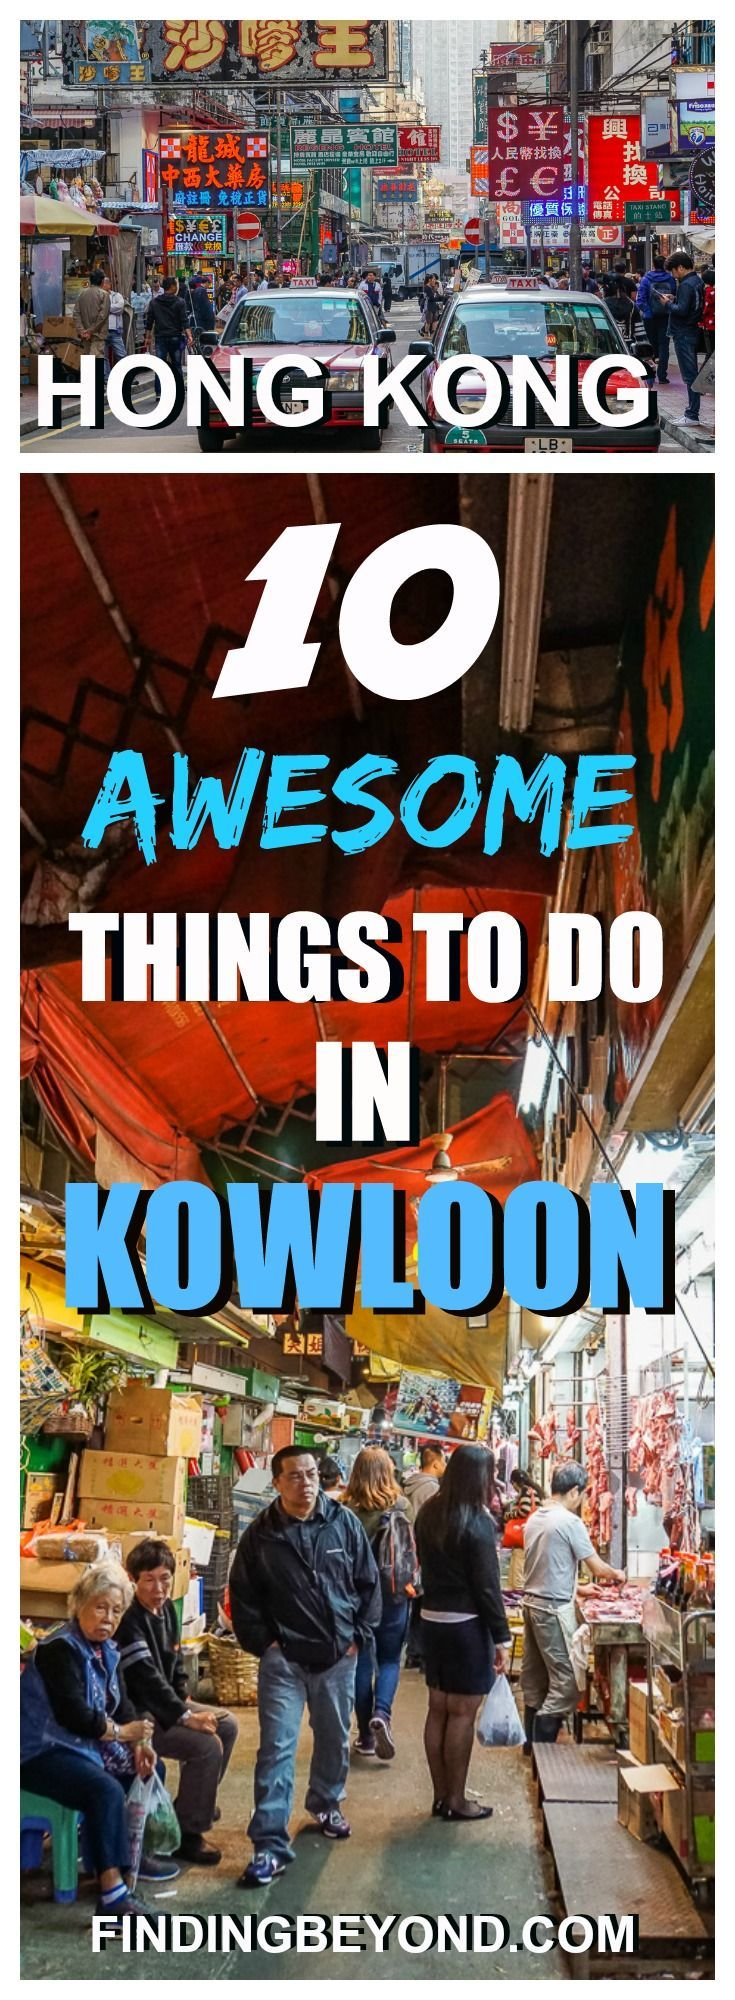 Things to do in Hong Kong | Things to in Kowloon | What to do in Hong Kong | What to see in Kowloon | Best of Kowloon | Where to go in Hong Kong | Hong Kong Travel | Top Kowloon sights | Top 10 Hong Kong Sights | Best of Hong Kong